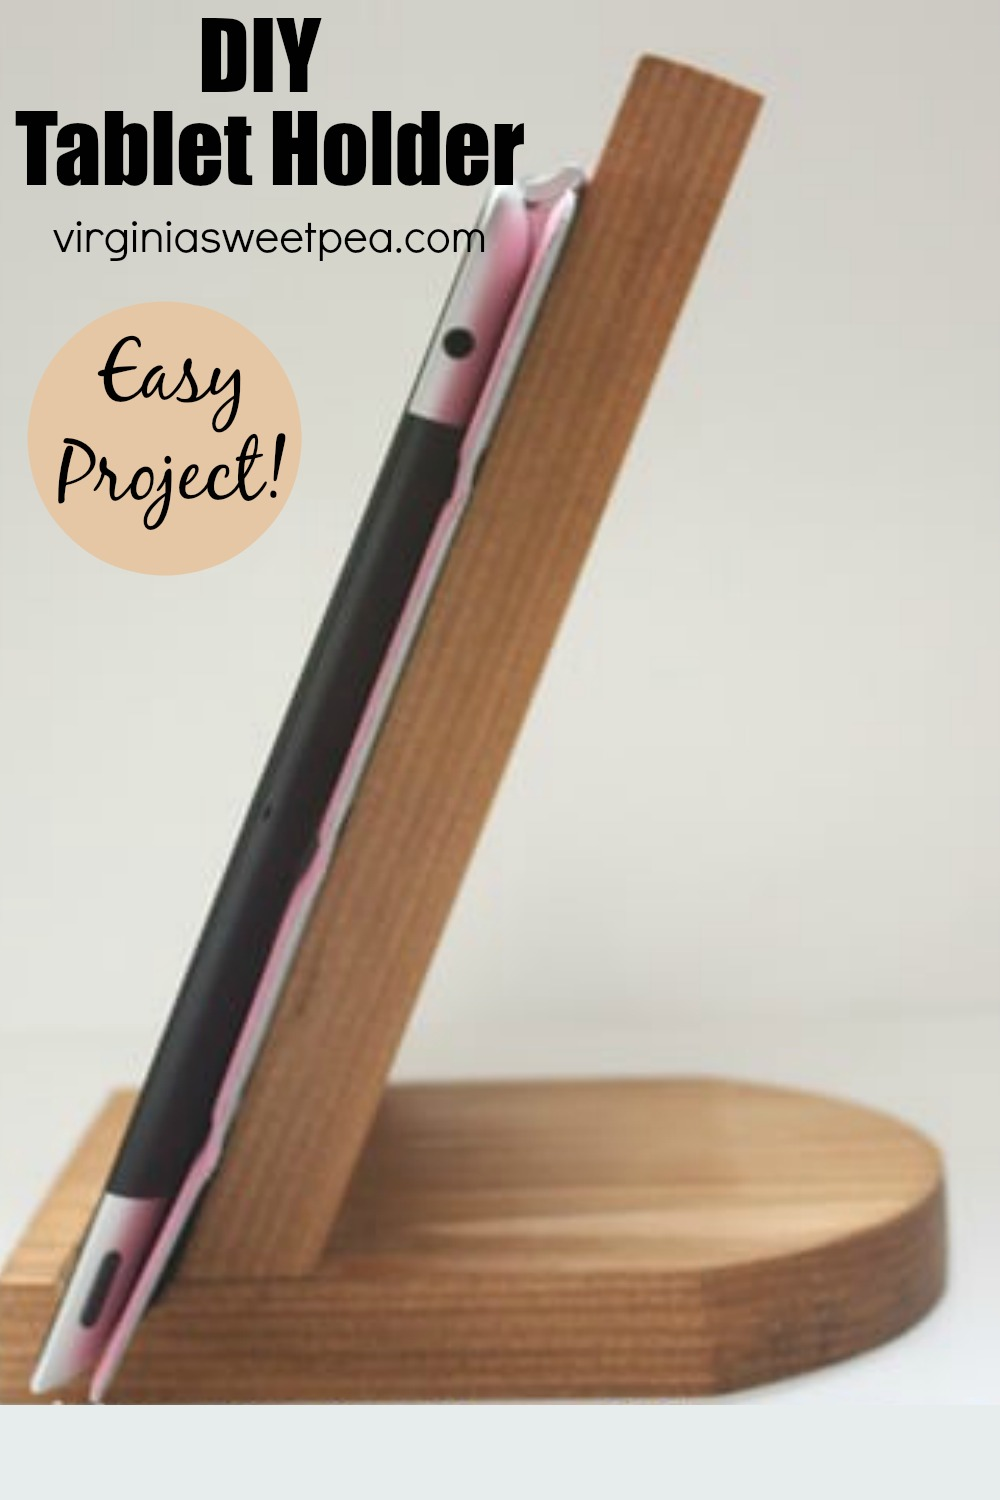 DIY Tablet Holder - A tablet holder is easily constructed using basic woodworking tools. This DIY project is inexpensive, easy, and quite functional. #diytabletholder via @spaula